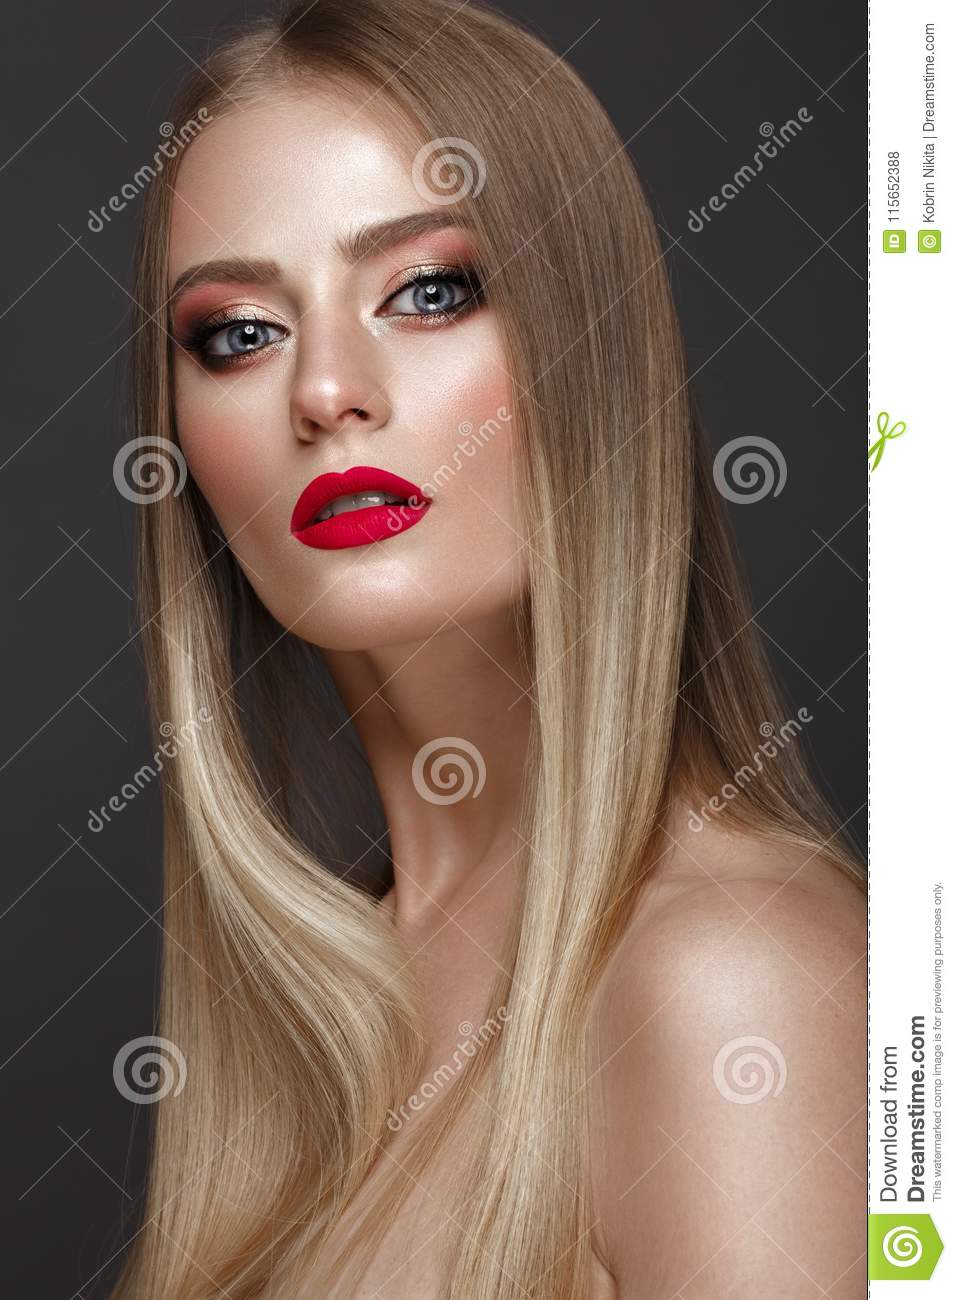 Beautiful blond girl with a perfectly smooth hair, classic make-up and red lips. Beauty face